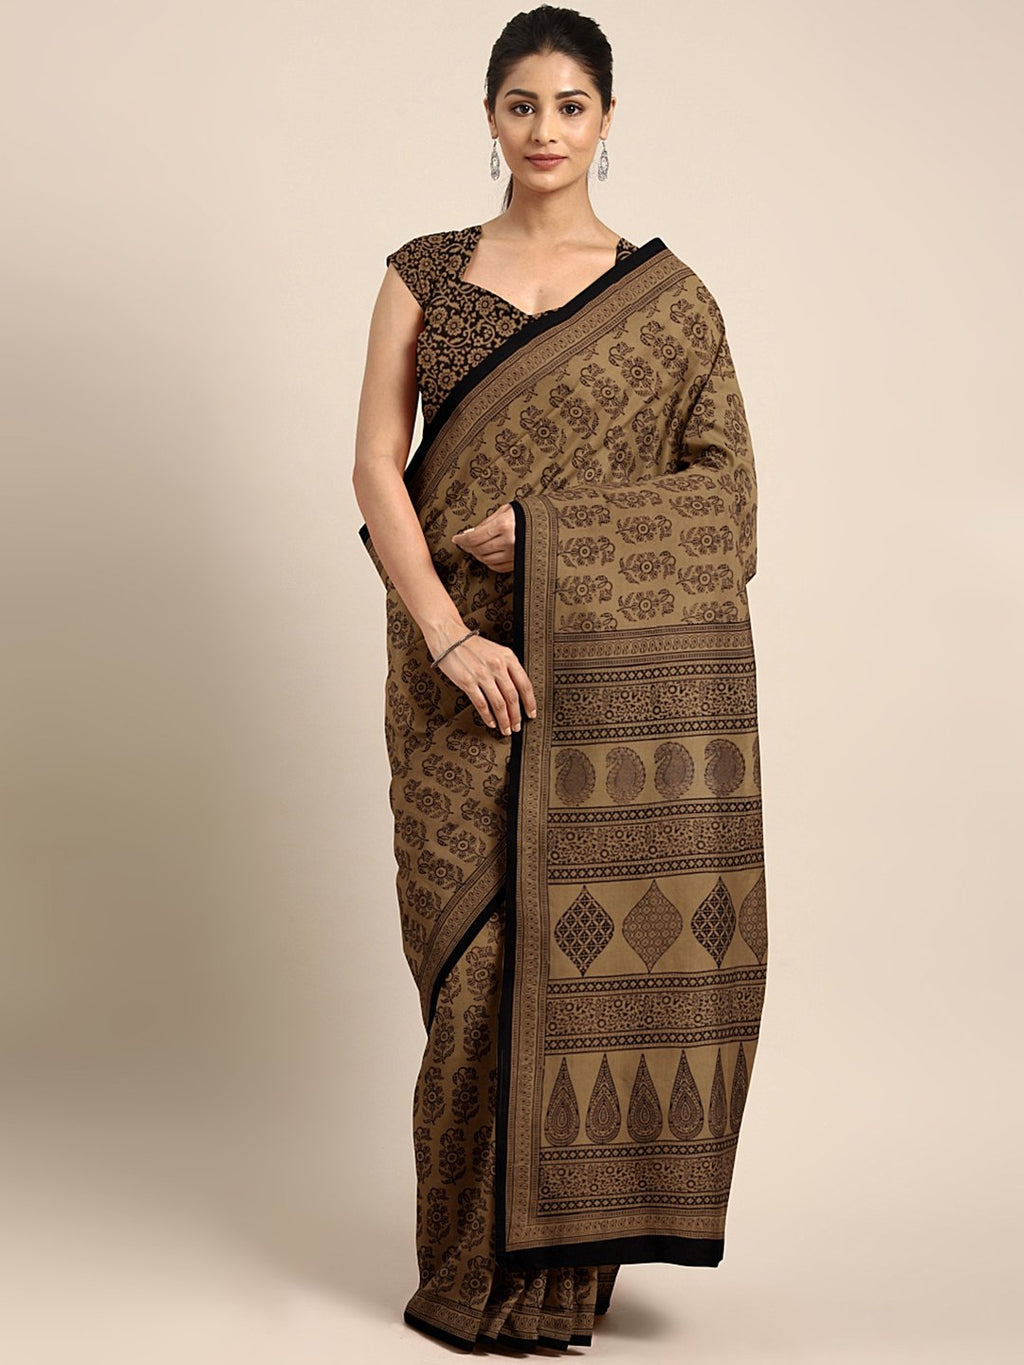 Brown Black Handblock Print Saree-Saree-Kalakari India-MYBASA0025-Bagh, Cotton, Geographical Indication, Hand Blocks, Hand Crafted, Heritage Prints, Natural Dyes, Sarees, Sustainable Fabrics-[Linen,Ethnic,wear,Fashionista,Handloom,Handicraft,Indigo,blockprint,block,print,Cotton,Chanderi,Blue, latest,classy,party,bollywood,trendy,summer,style,traditional,formal,elegant,unique,style,hand,block,print, dabu,booti,gift,present,glamorous,affordable,collectible,Sari,Saree,printed, holi, Diwali, birthda